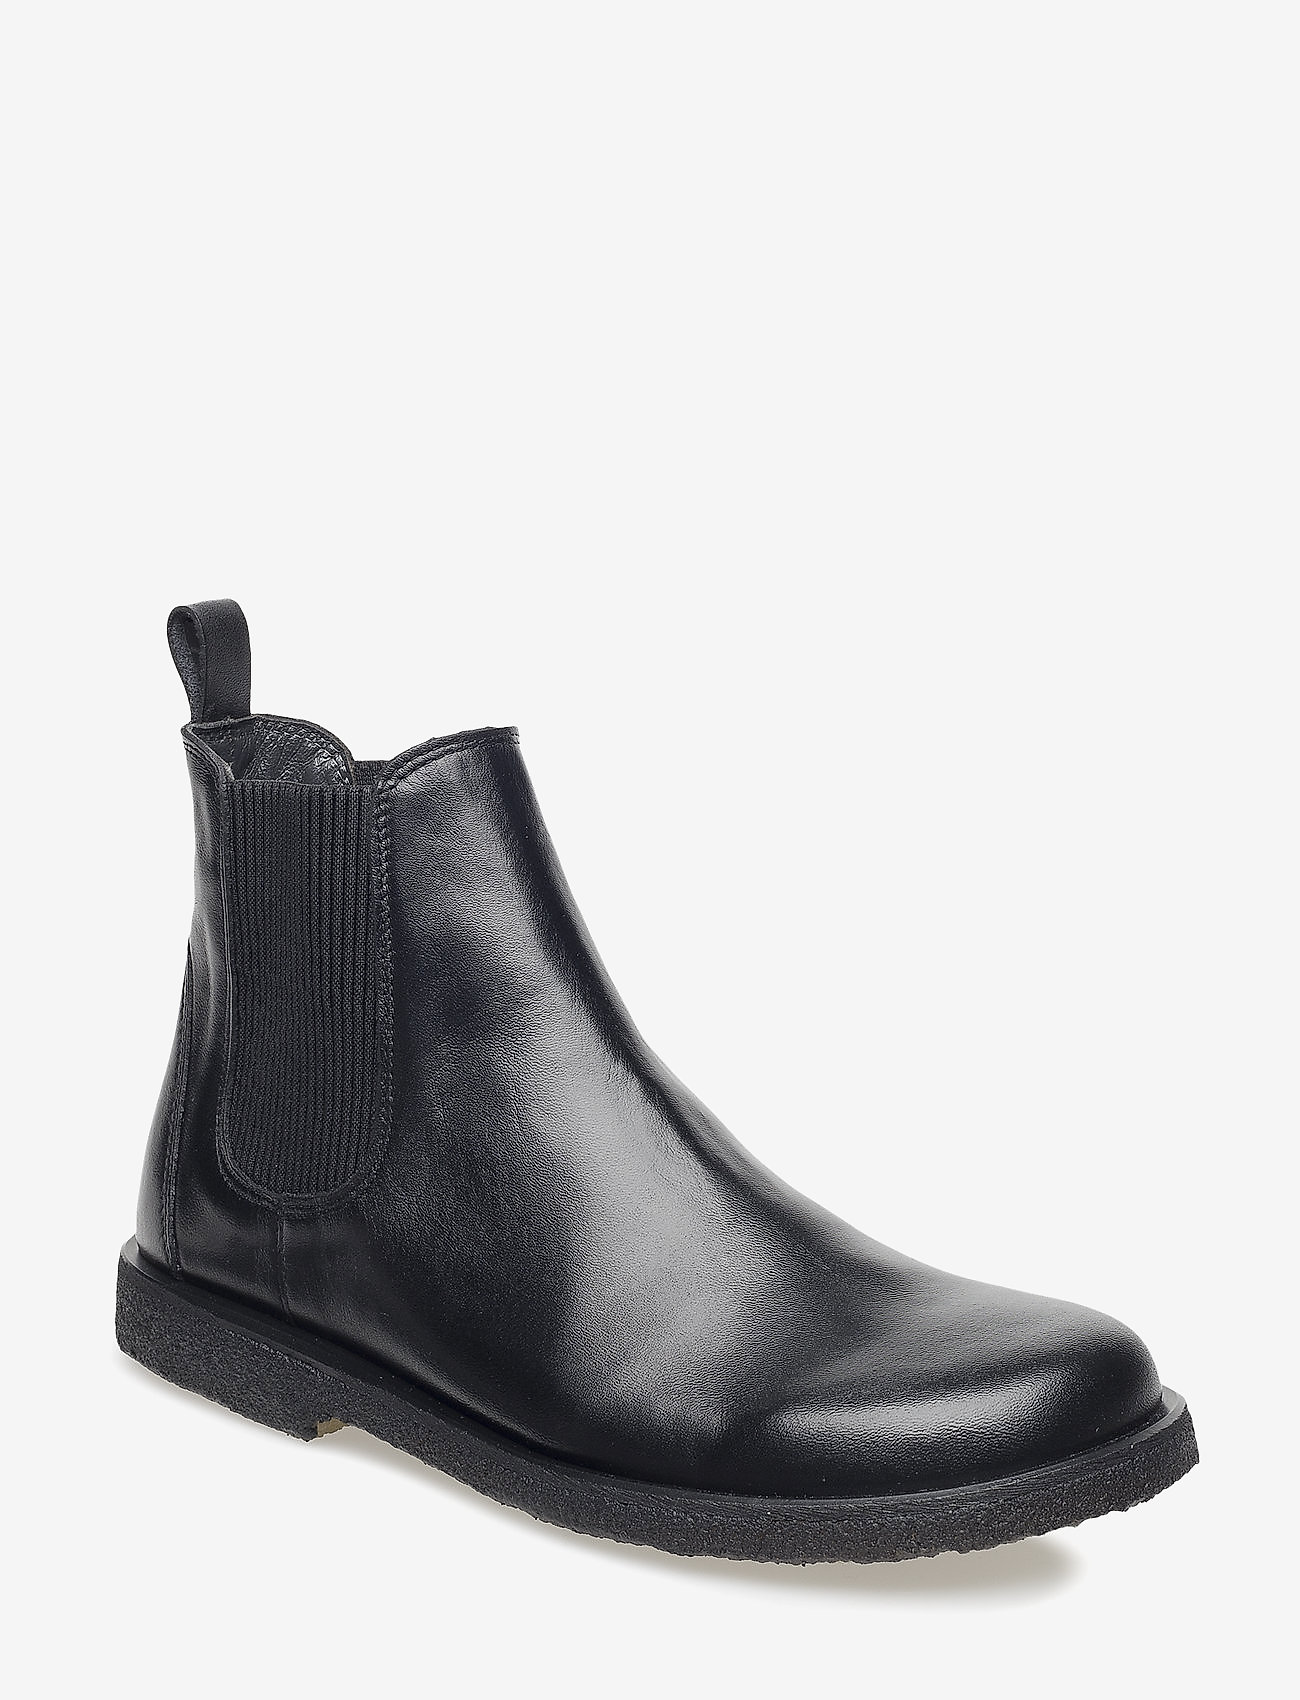 ANGULUS - Booties-flat - with elastic - chelsea boots - 1604/019 black/black - 0